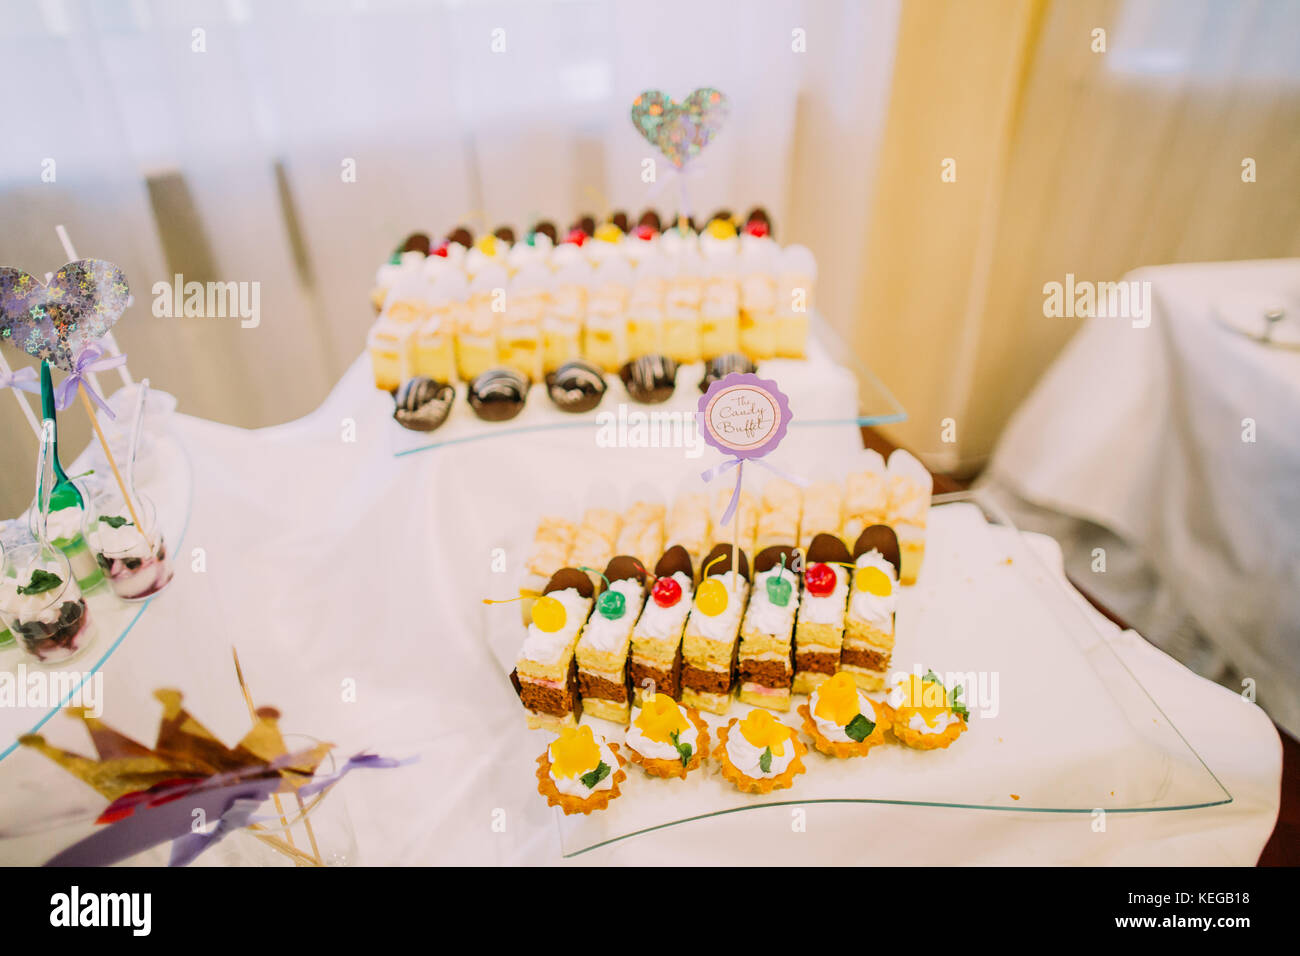 Dessert Wedding Reception Delicious Pieces Of Cakes On The Table